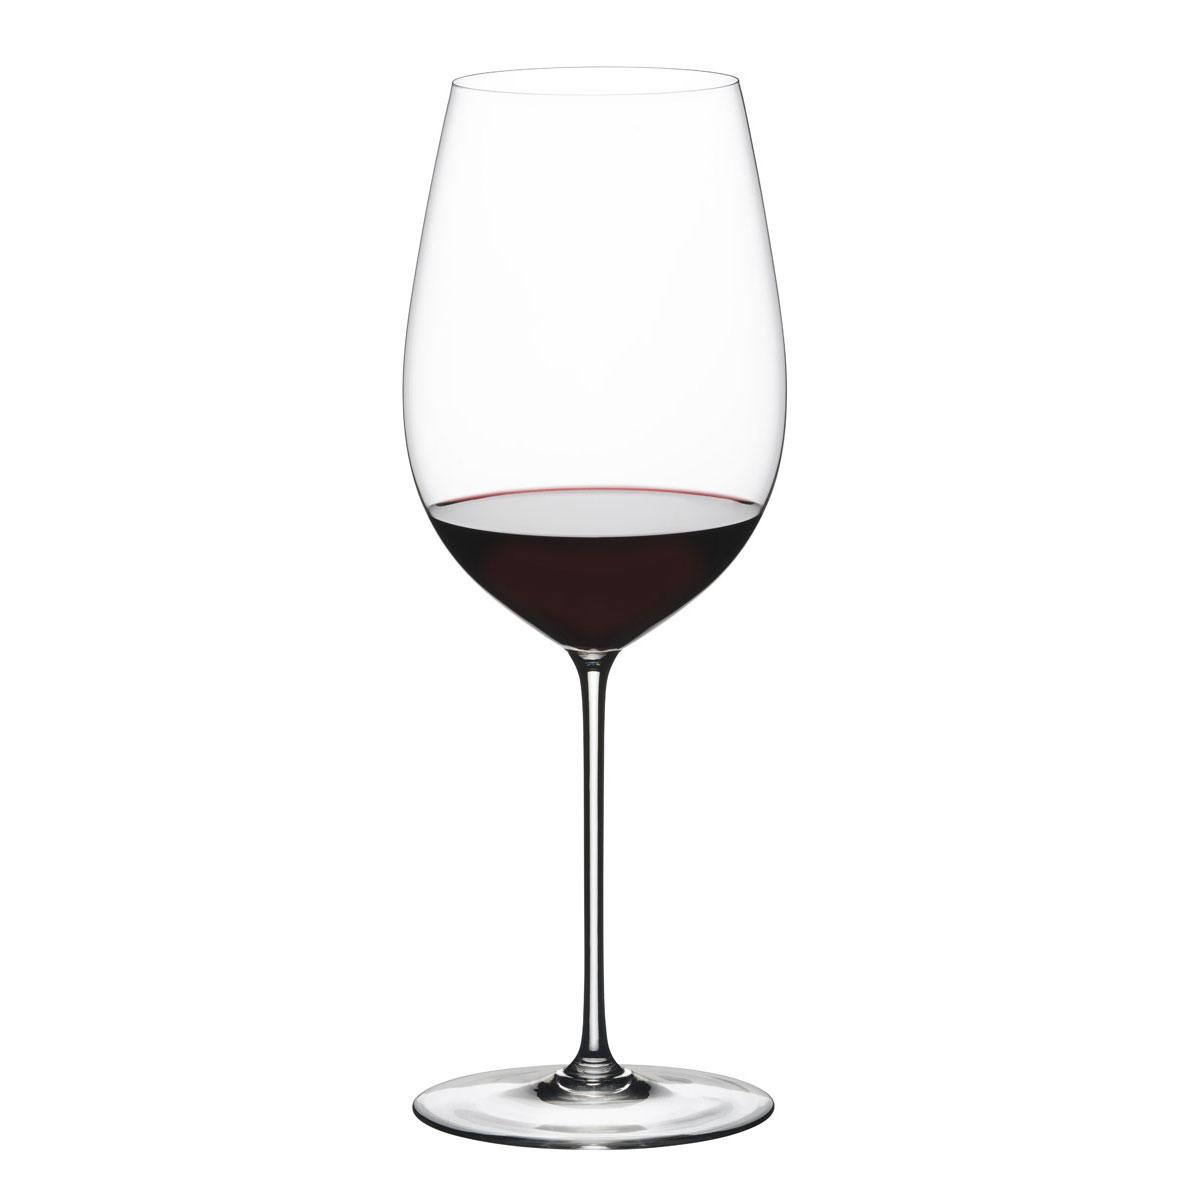 Riedel Sommeliers, Hand Made, Superleggero Bordeaux Grand Cru Wine Glass, Single